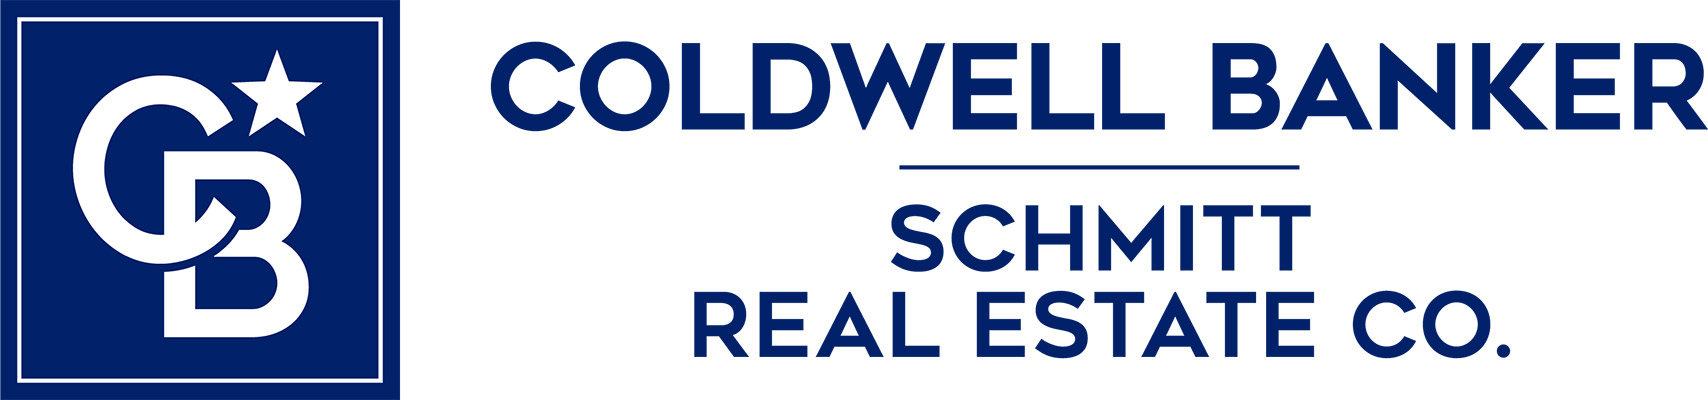 Thomas McLaughlin - Coldwell Banker Logo